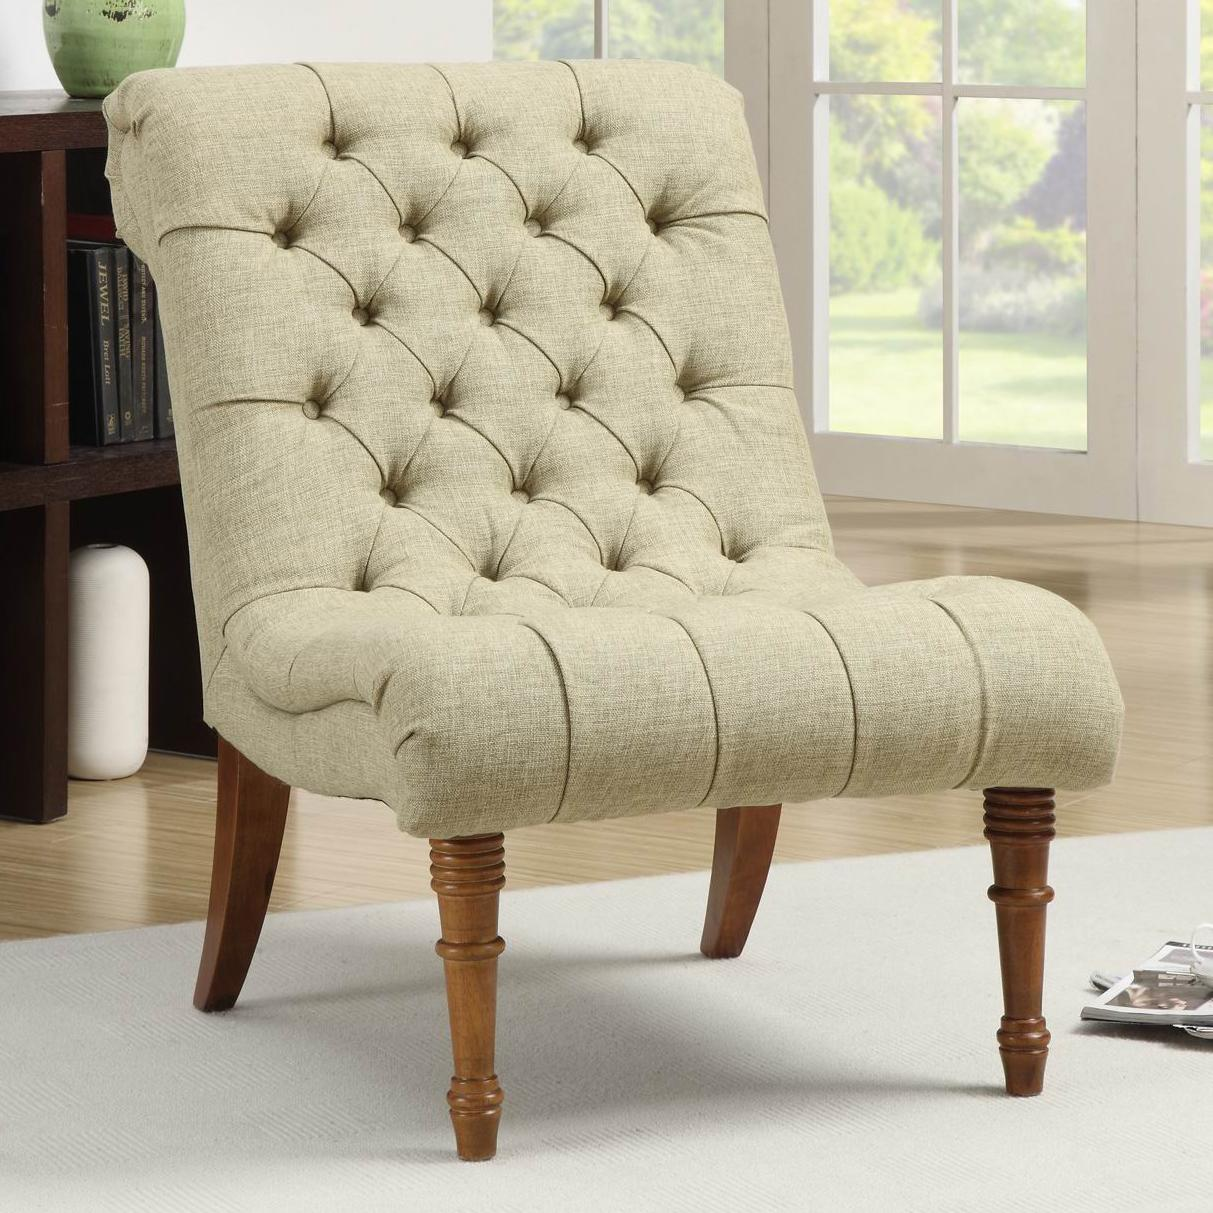 Accent Seating Tufted Accent Chair Without Arms